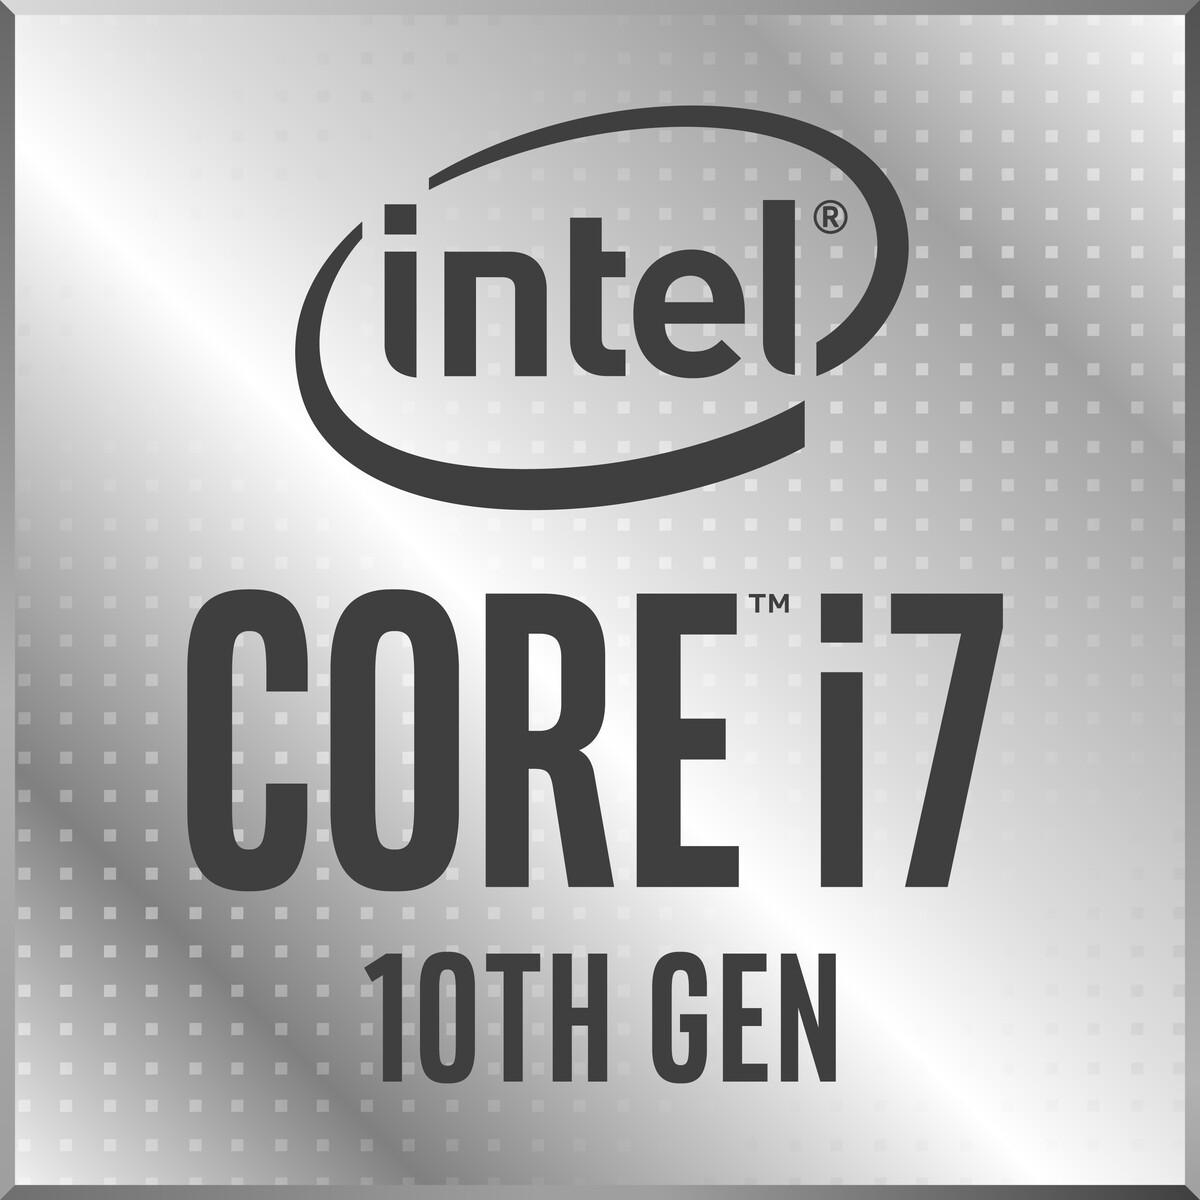 Intel Core i7-1065G7 Laptop Processor (Ice Lake) - NotebookCheck.net Tech